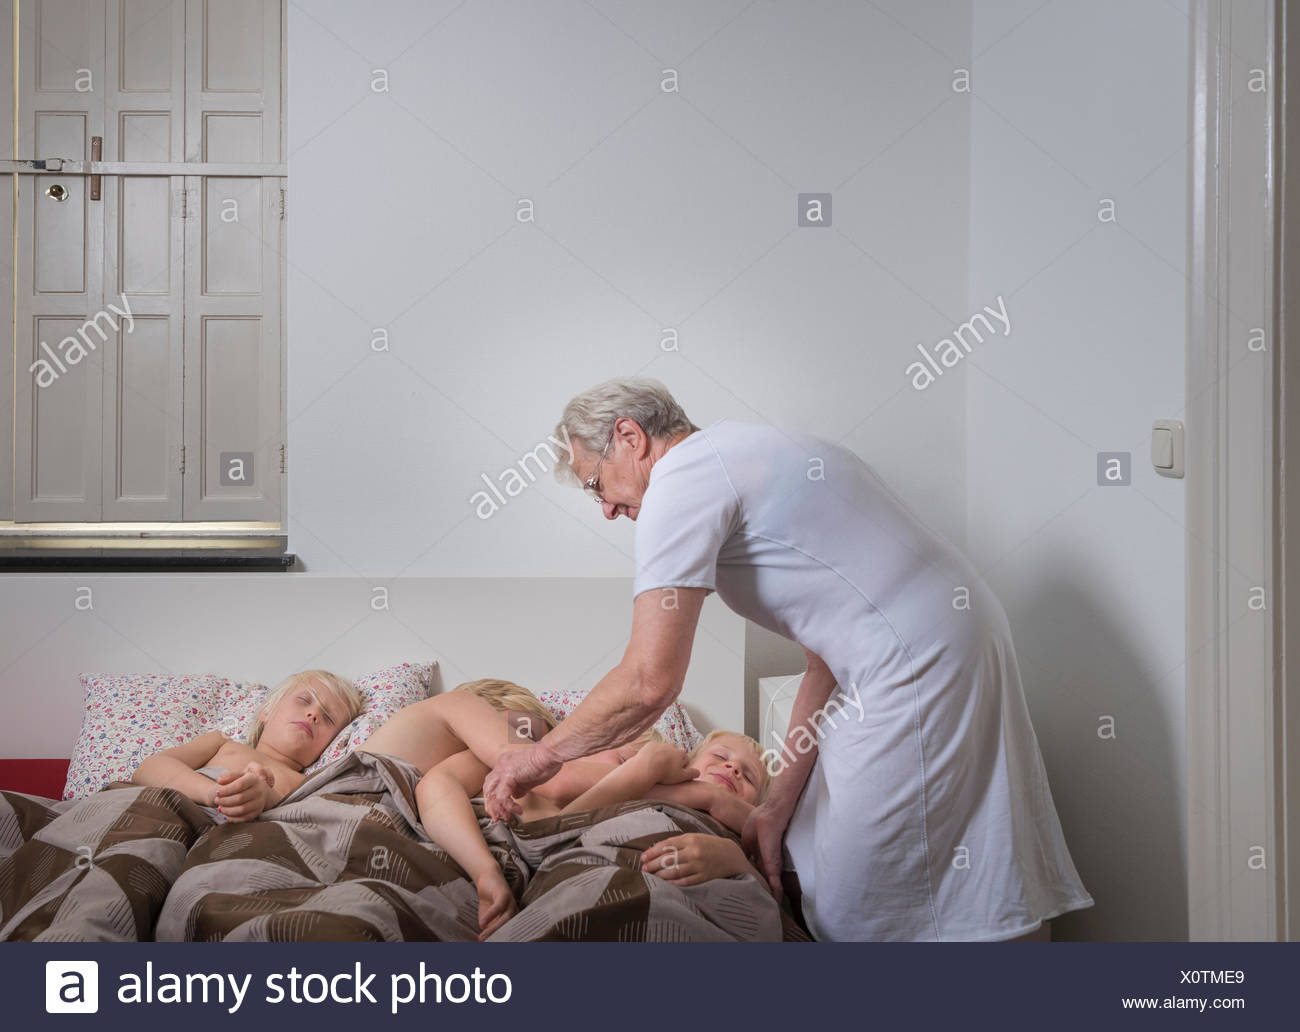 Grandmother settling grandsons in bed - Stock Image